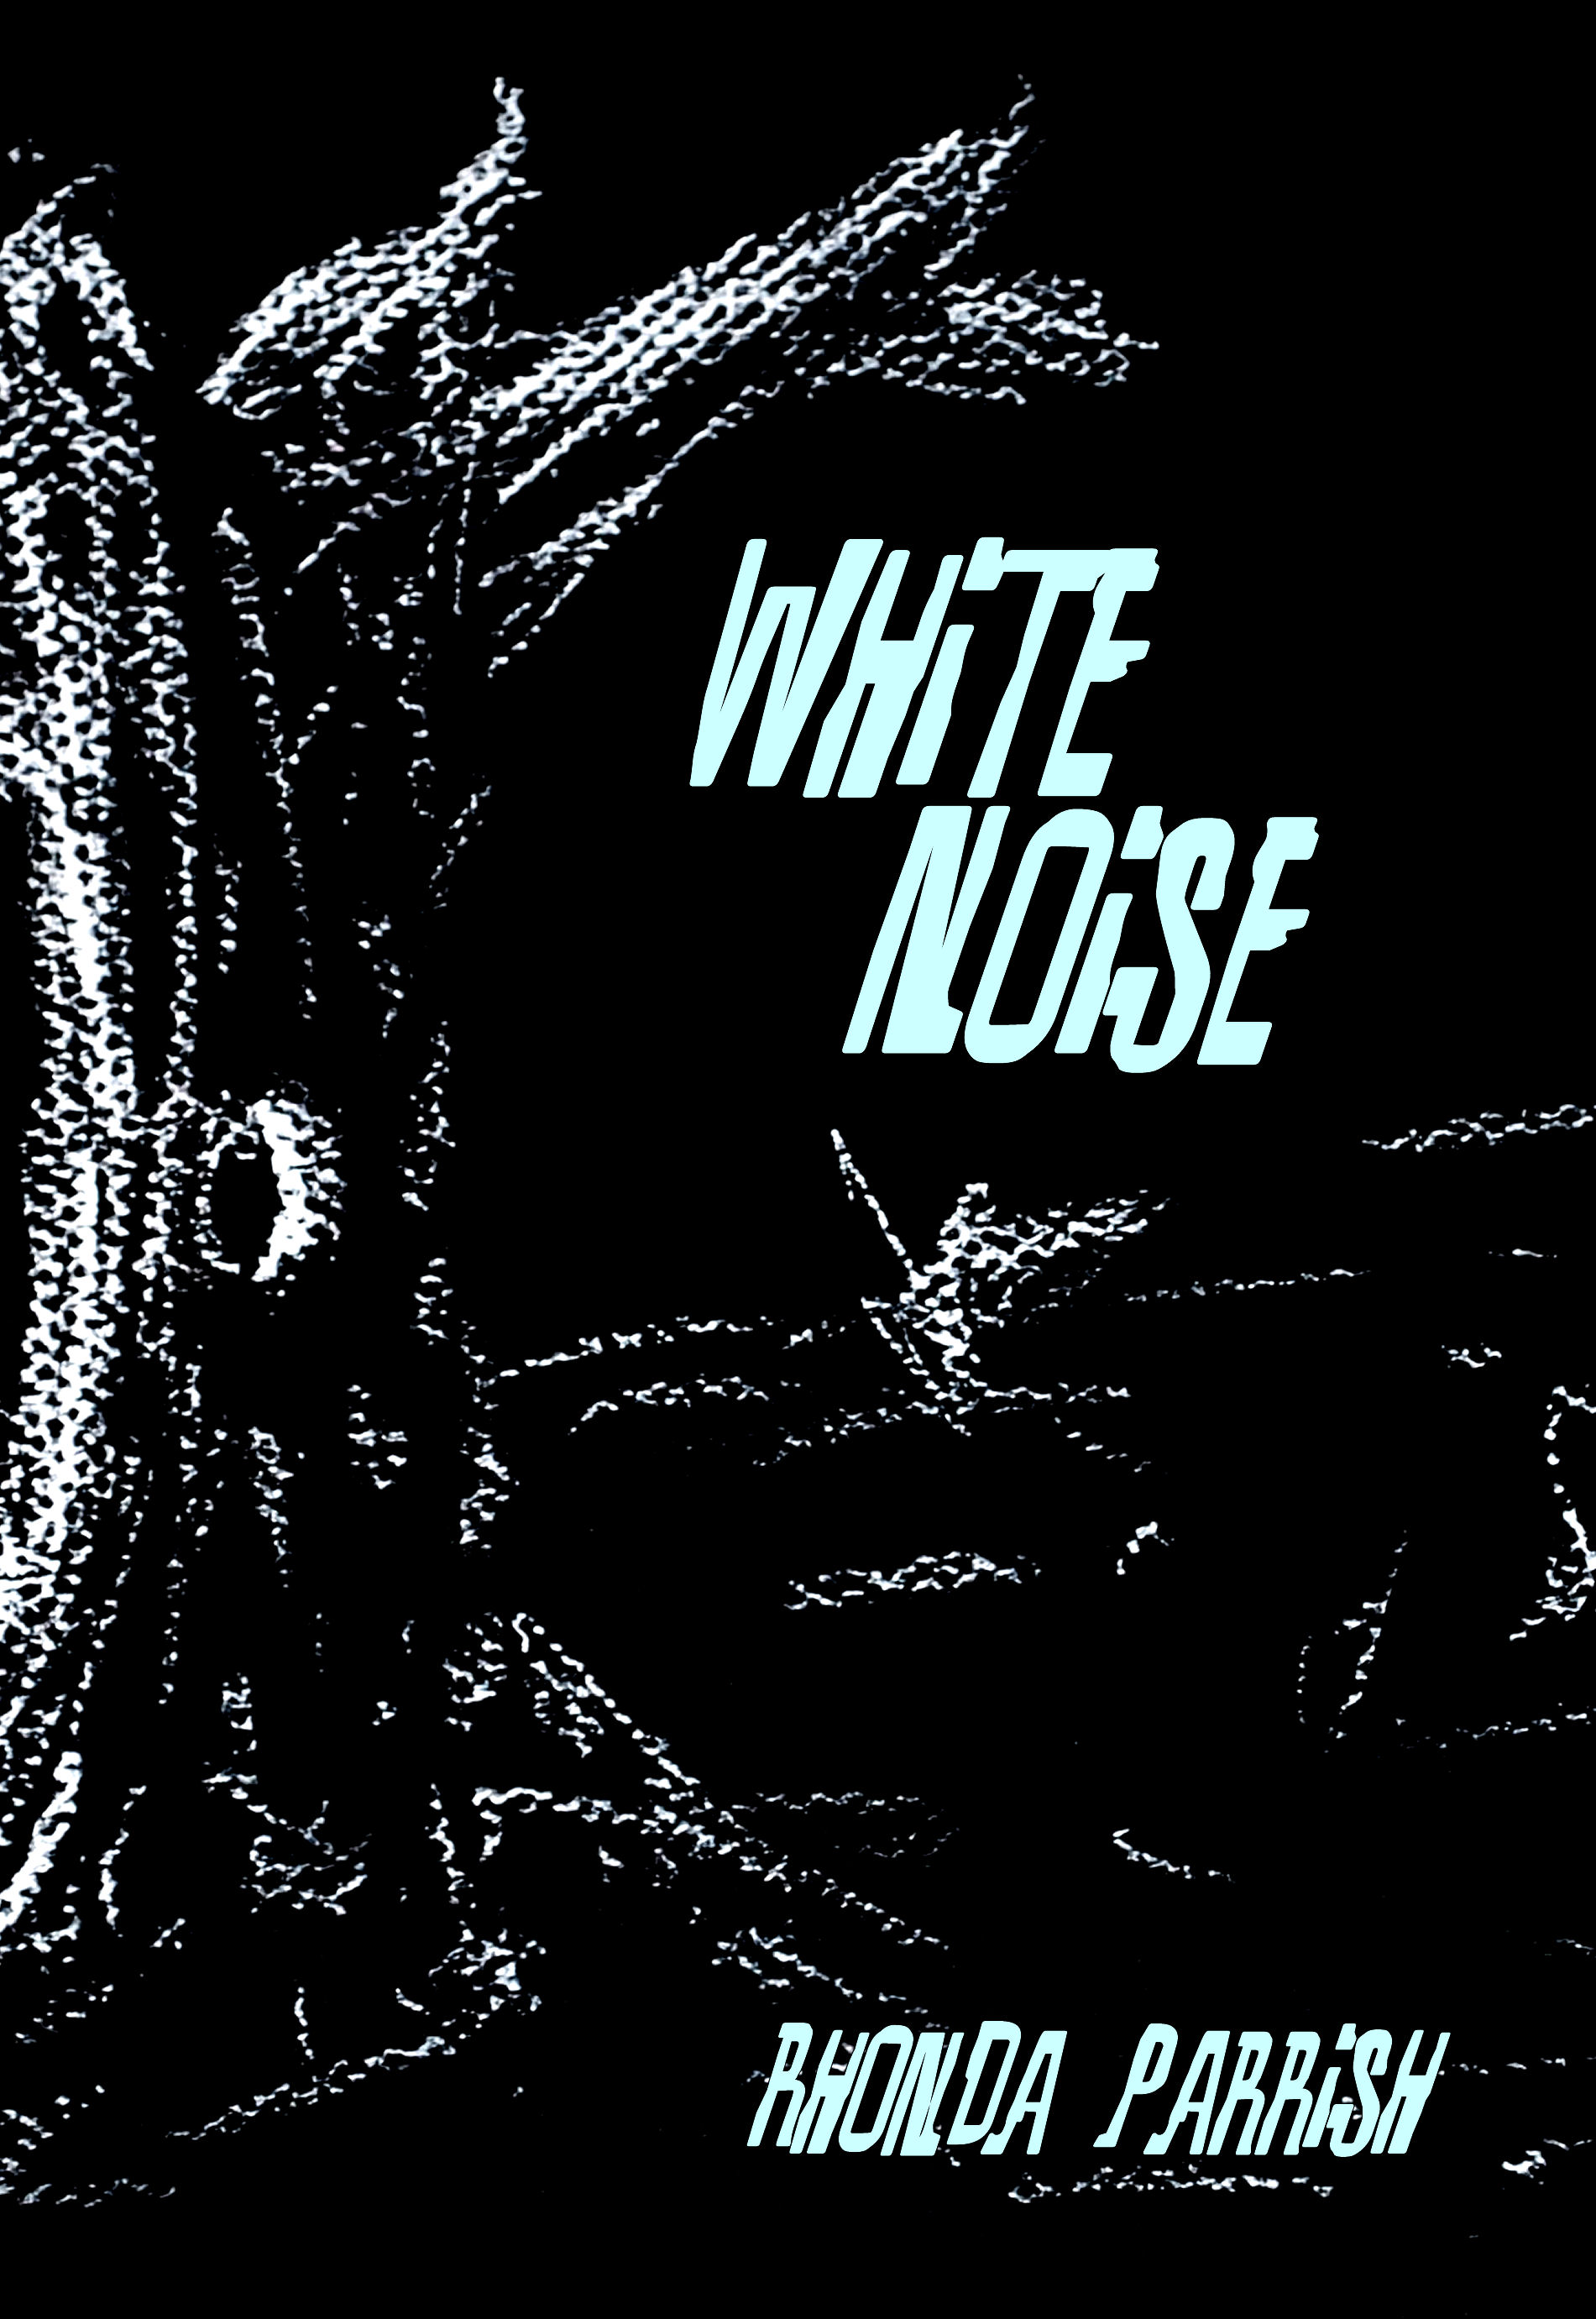 White Noise -- Art and cover design by Jonathan Parrish